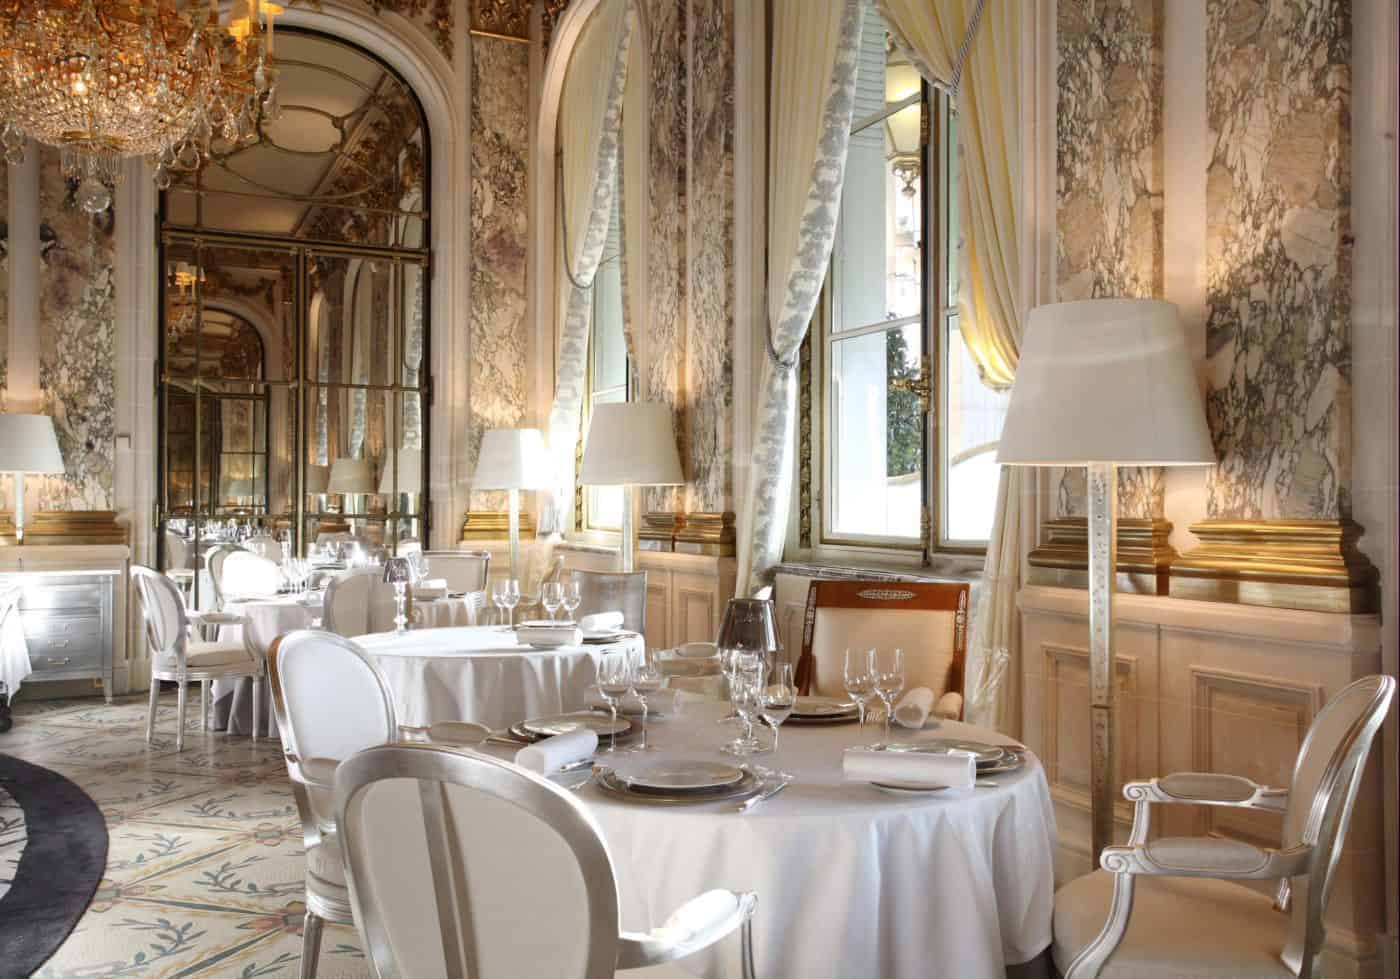 Five-Star-Restaurants-in-Paris-France-Restaurant-le-Meurice-Fine-Dining-Leading-Hotels-Luxury-Lifestyle-Beverly-Hills-Magazine-1